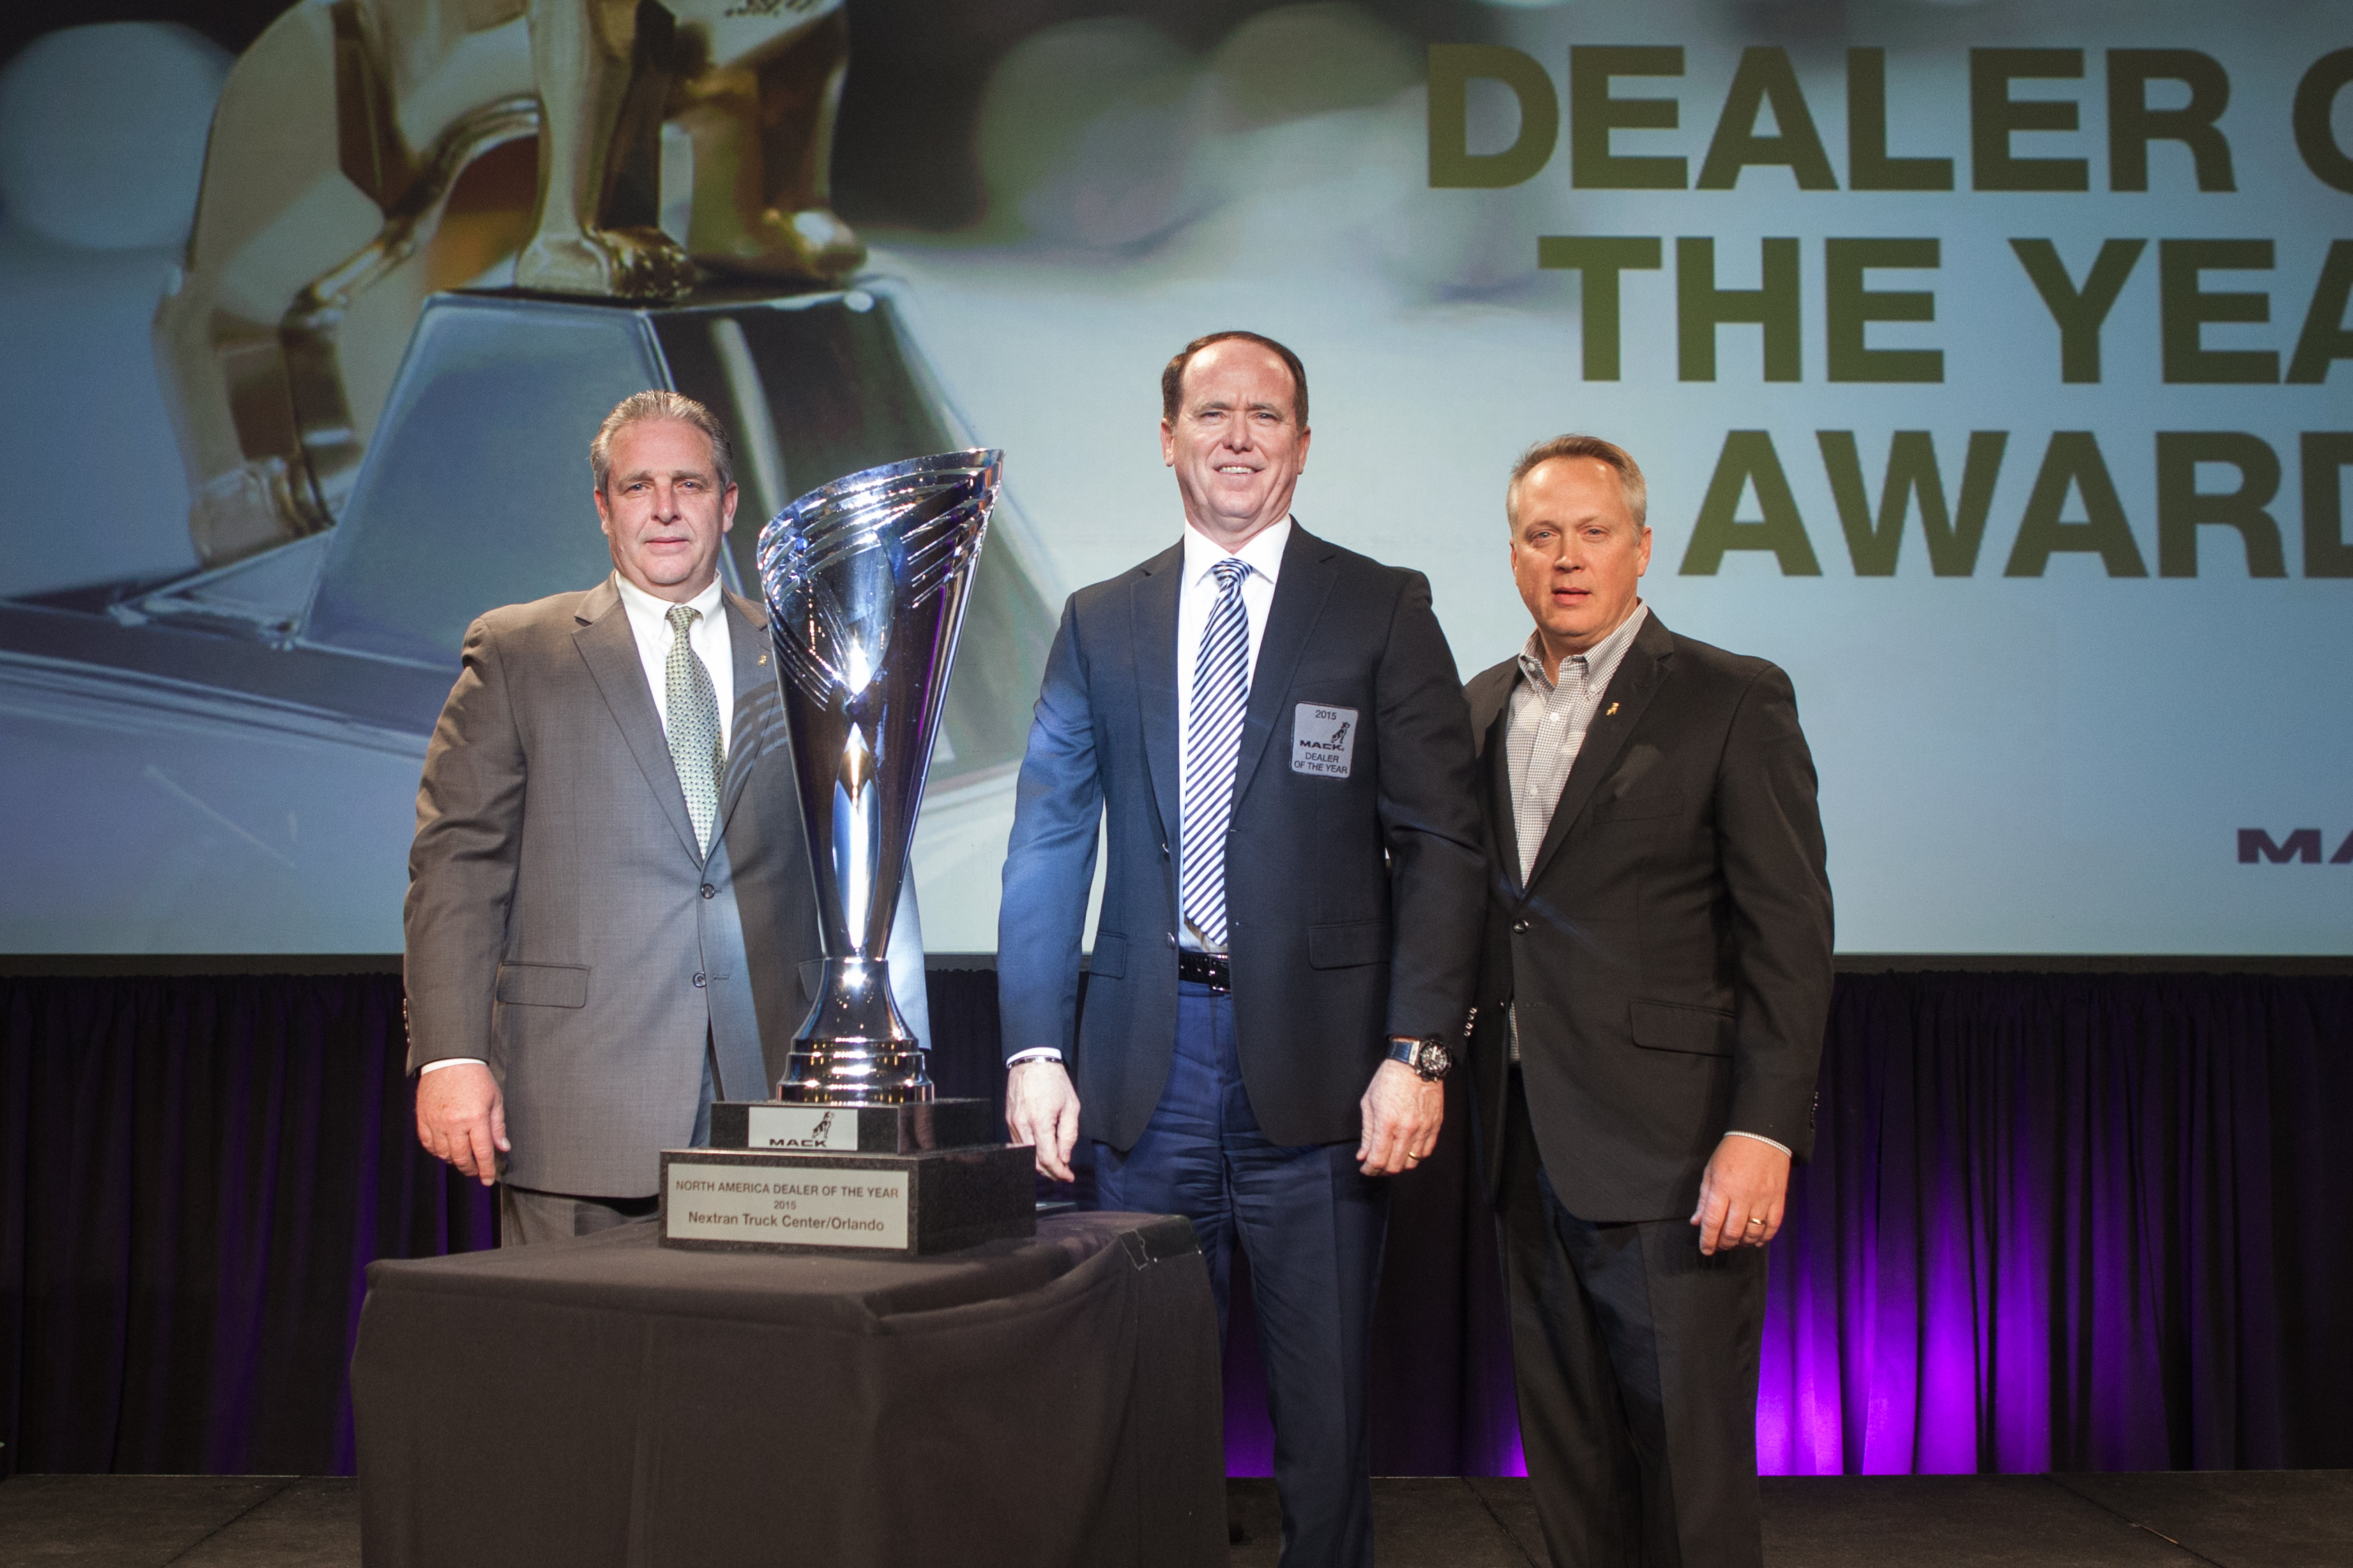 Mack Dealer of the Year 2015